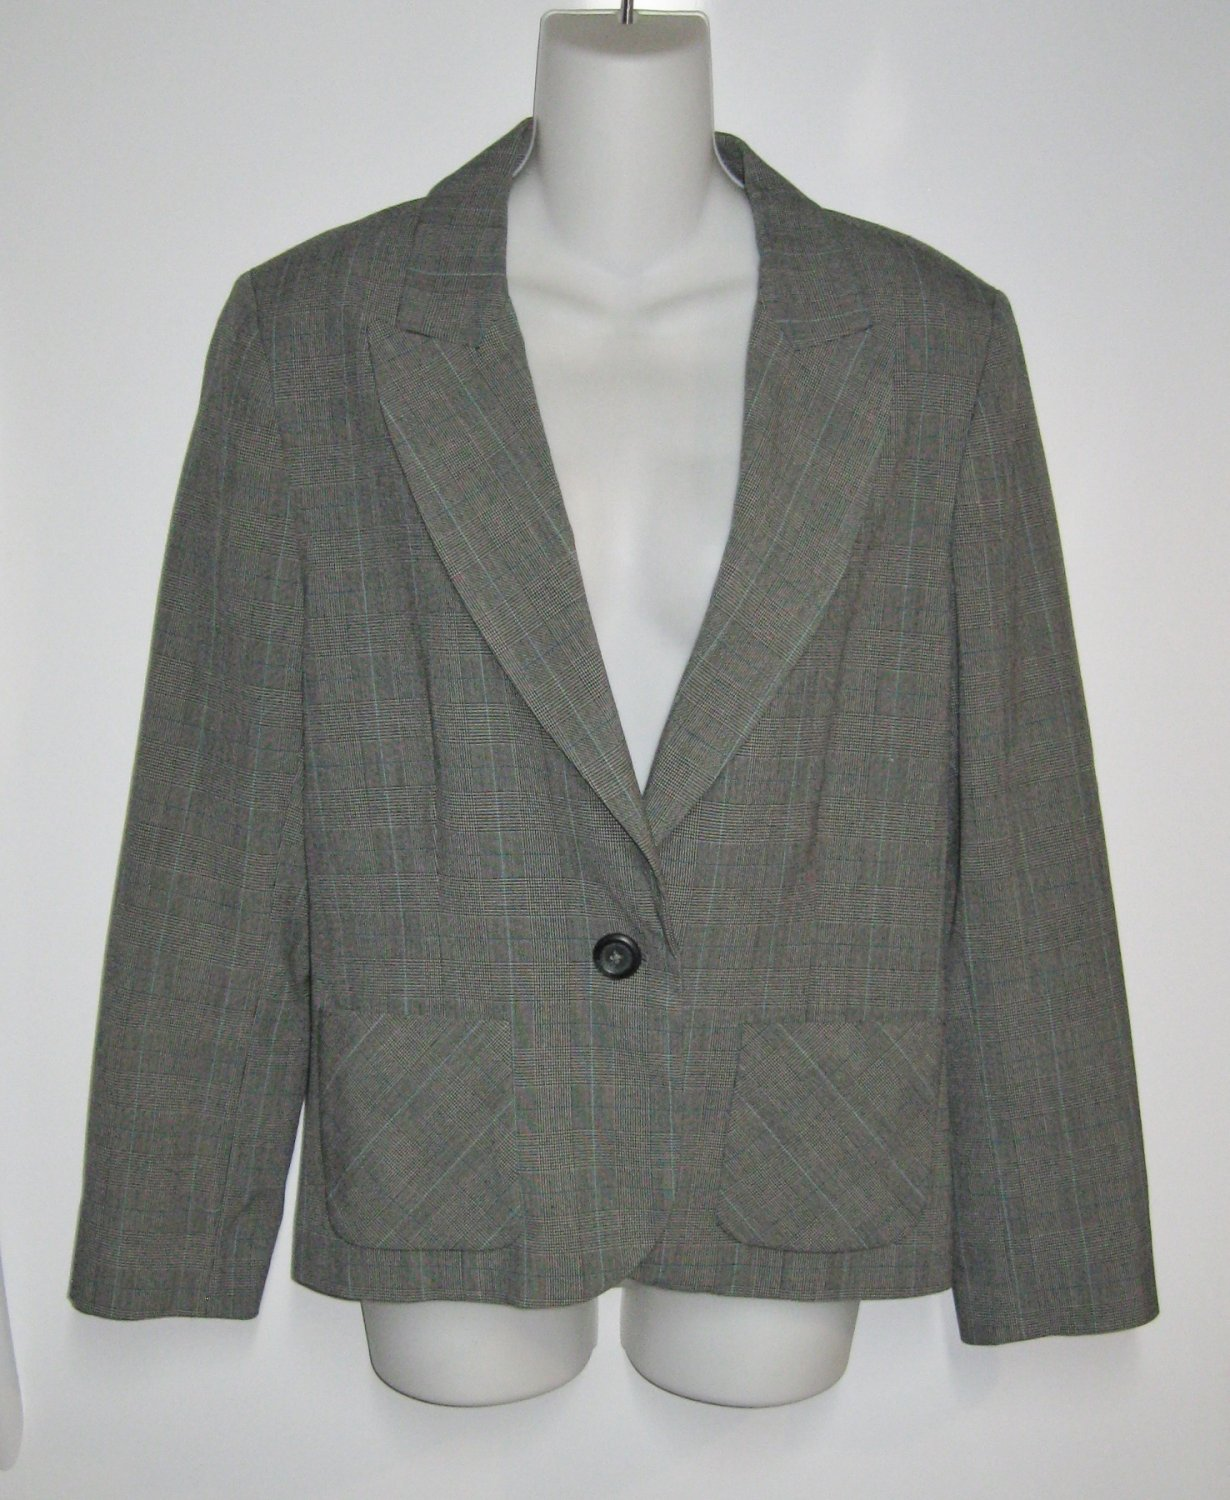 NWT-GEORGE-One Button Blazer W/Lapels Small Gray Plaid-Sz. 10 Lined Interior